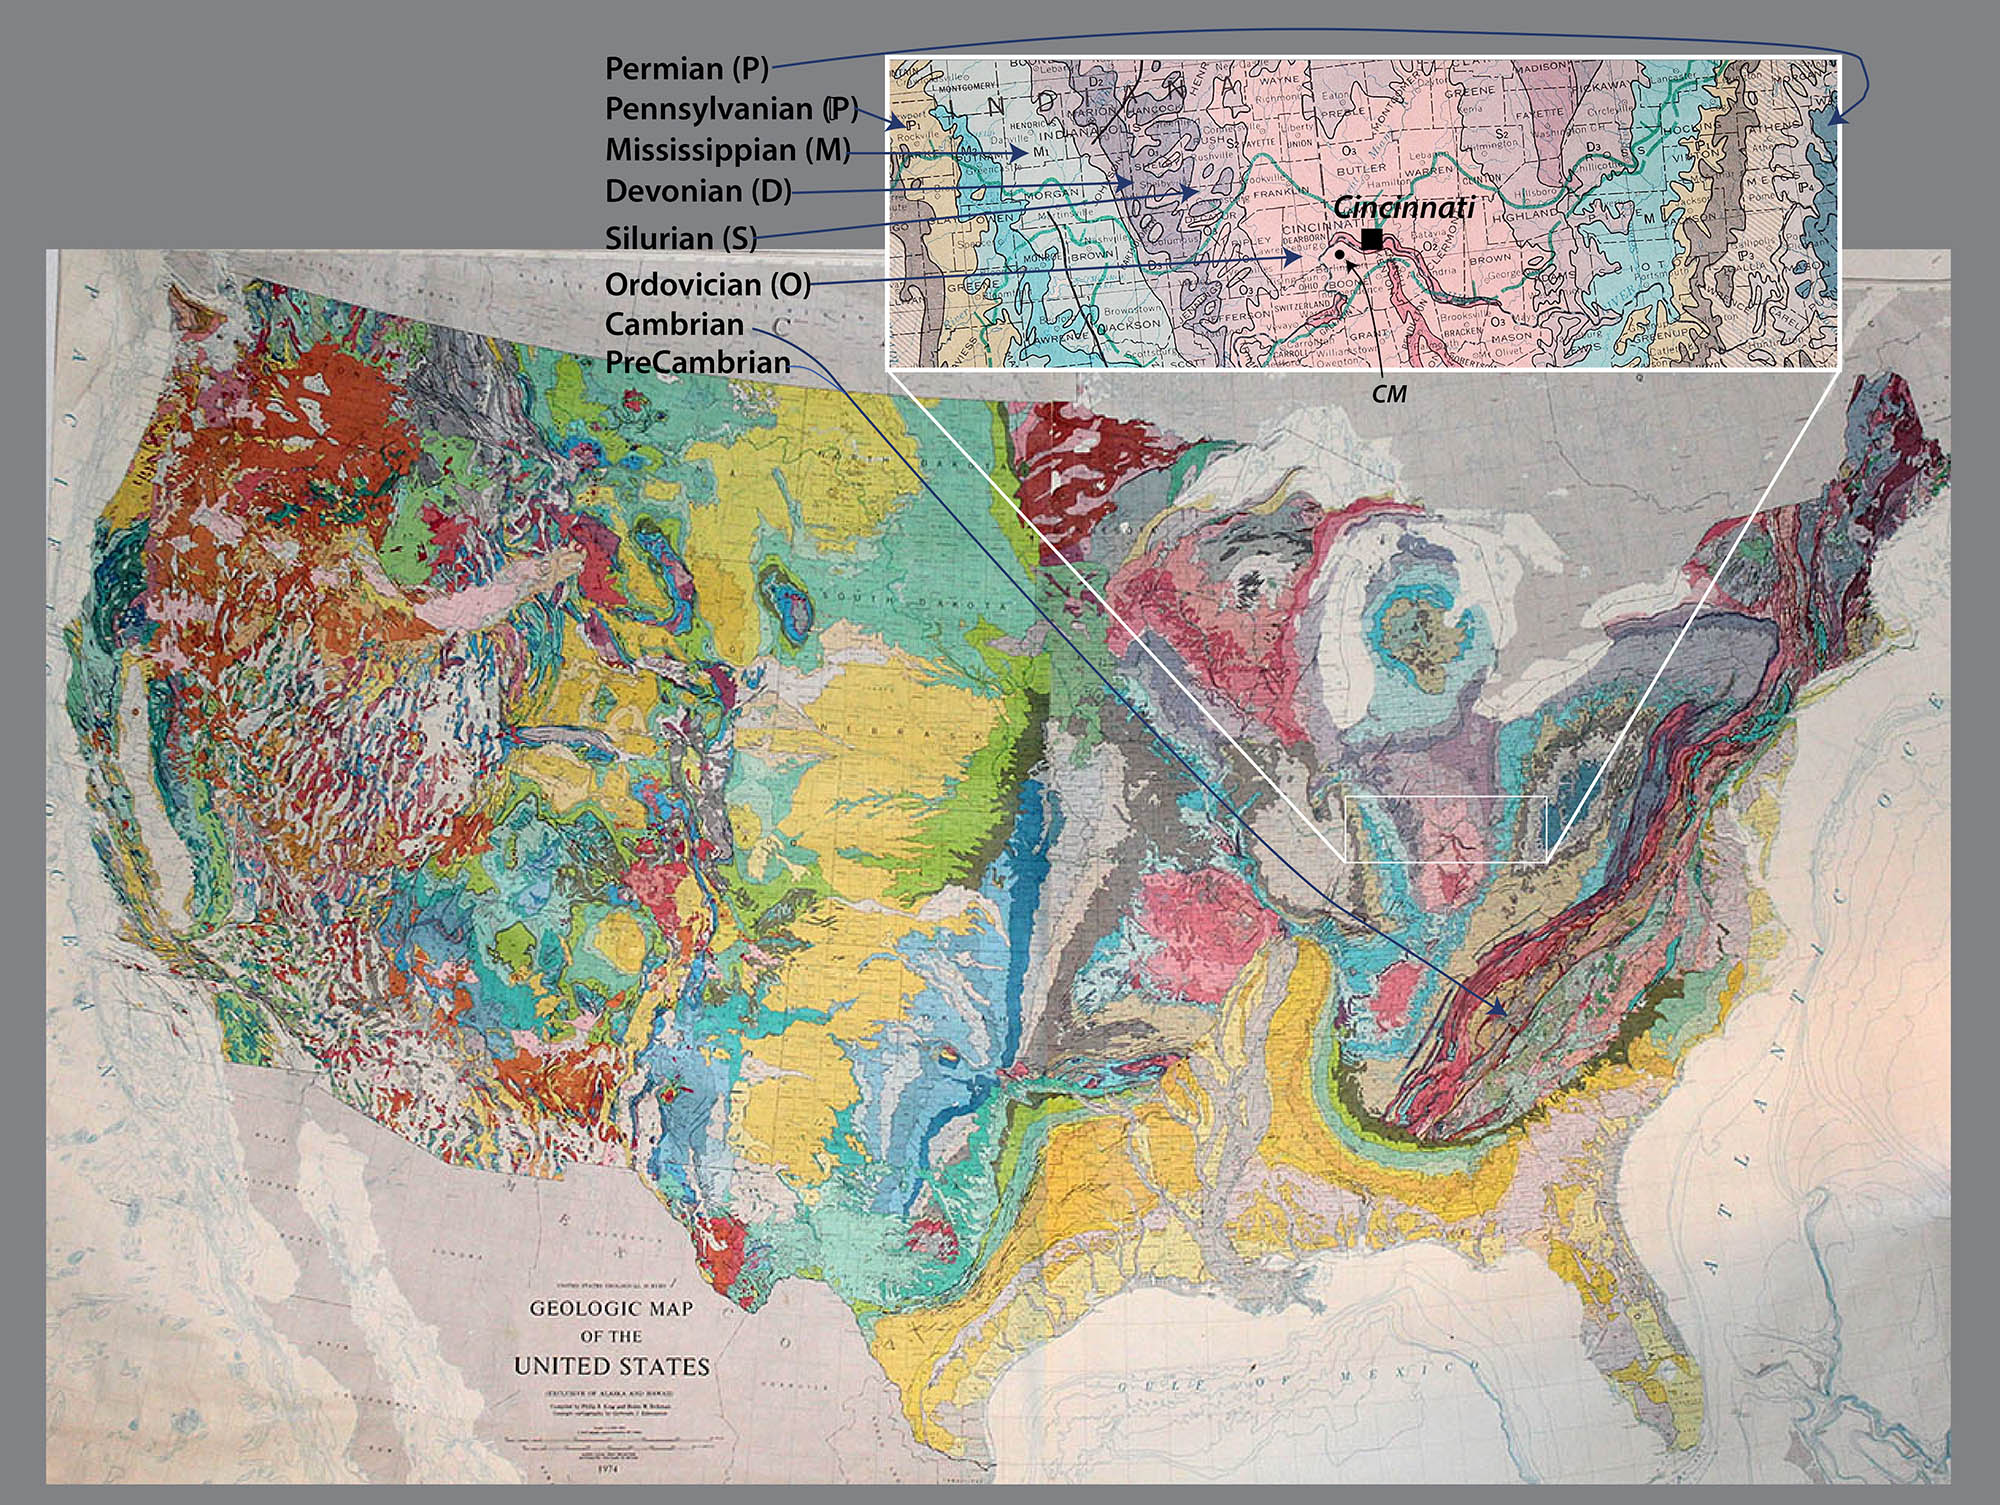 United States geologic map | geologictimepics on philadelphia geology map, pacific northwest geology map, russia geology map, north america geology map, new zealand geology map, delaware geology map, u.s. geological map, italy geology map, virginia geology map, white sands geology map, yosemite national park geology map, washington geology map, indiana geology map, manhattan geology map, university of cincinnati geology map, west texas geology map, new york state geology map, south dakota geology map, united states geological survey maps, new hampshire geology map,